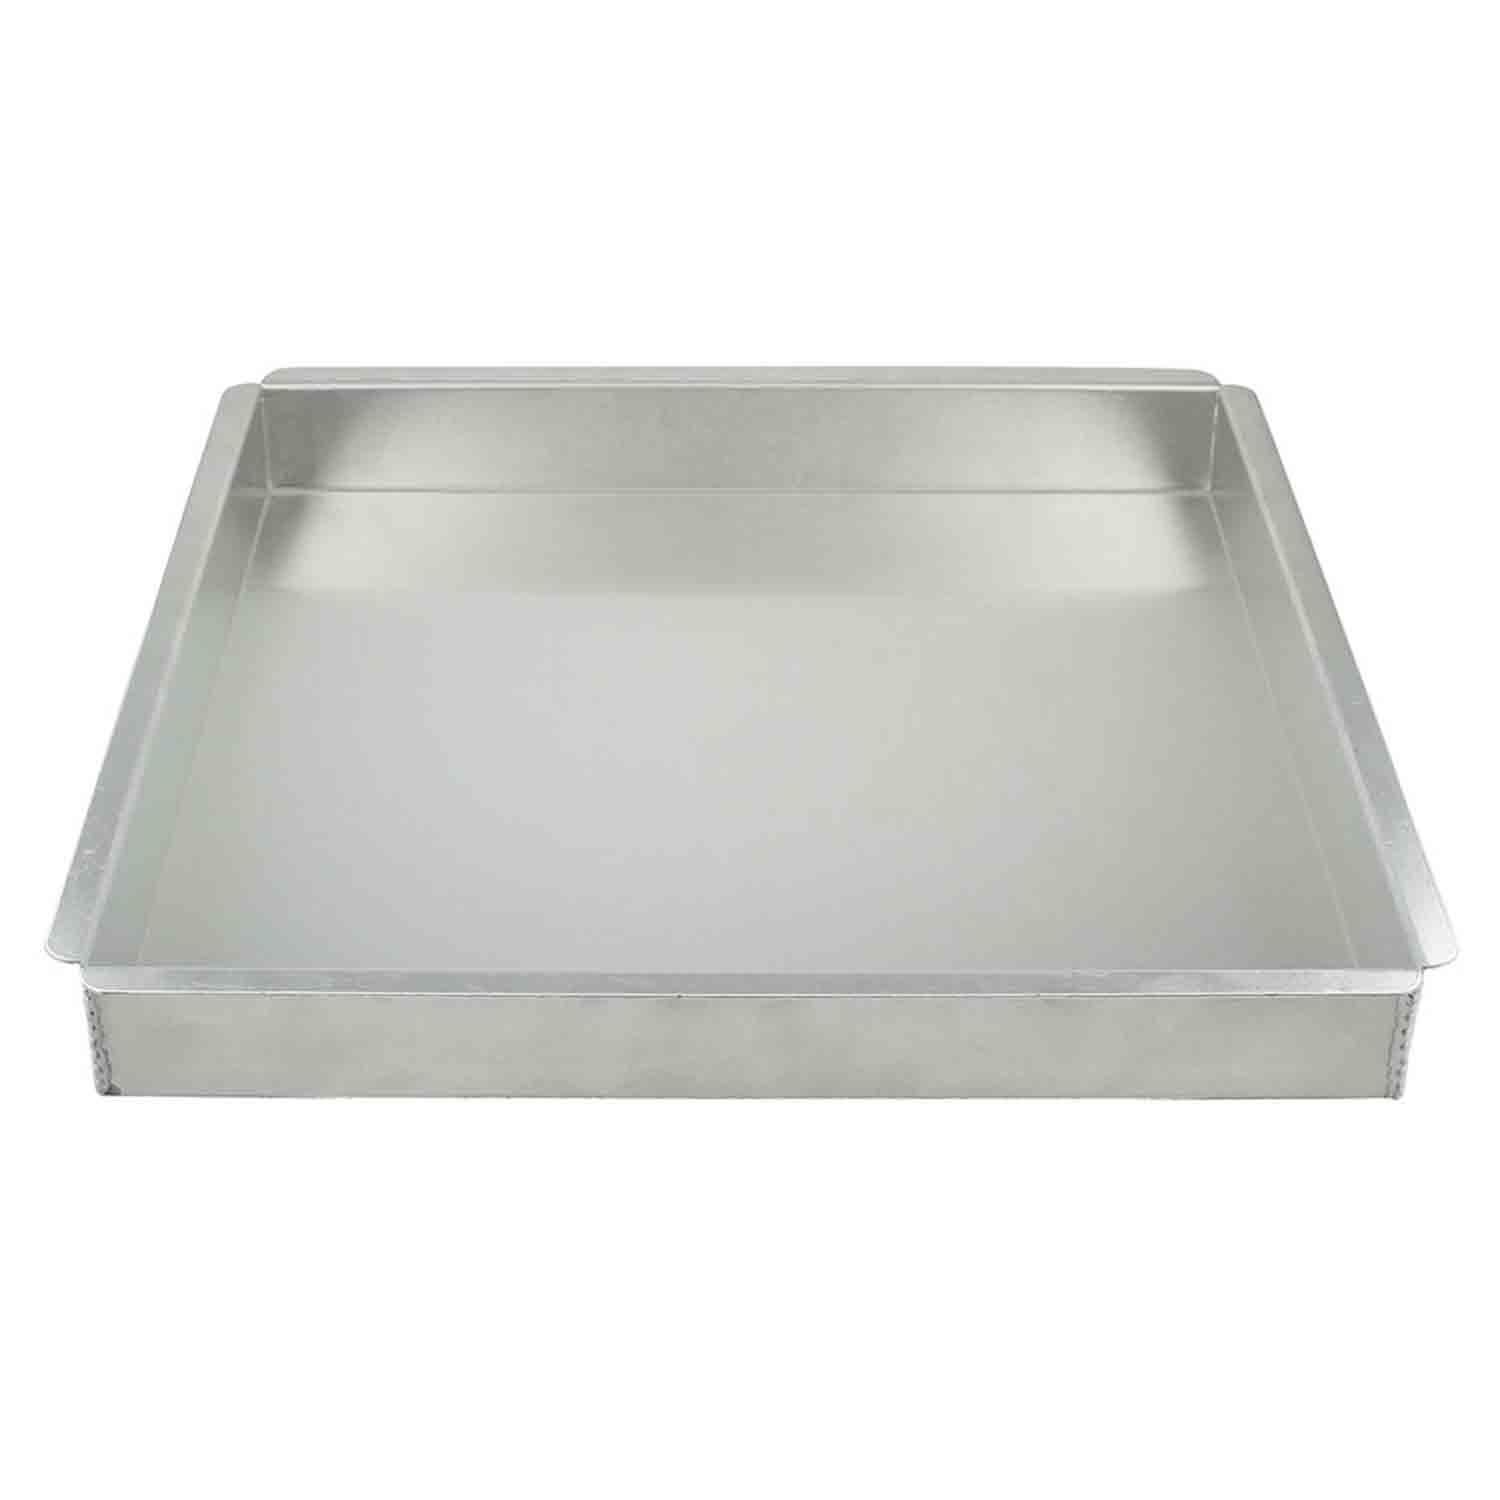 "20 x 2"" Magic Line Square Cake Pan"